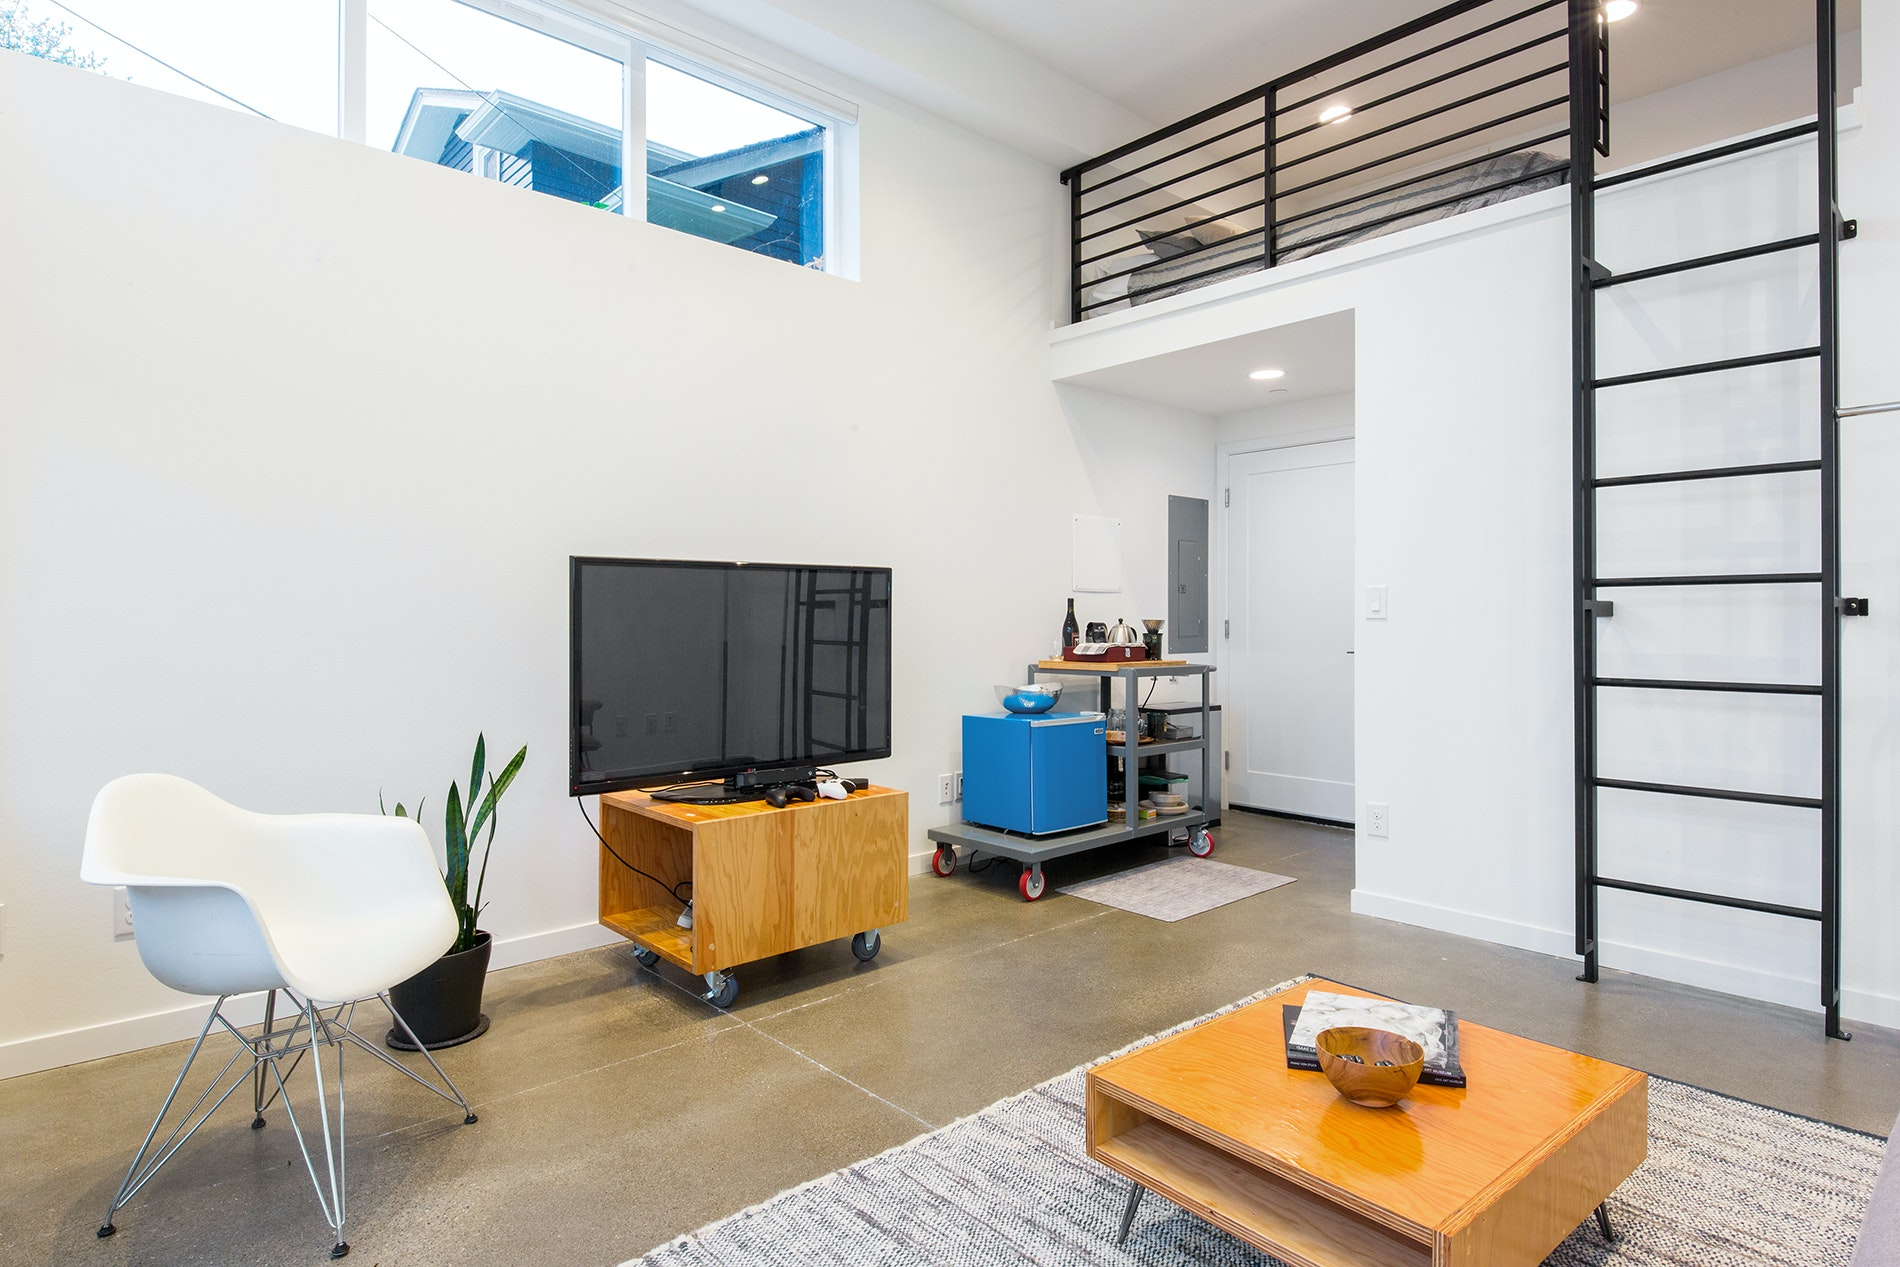 Base your stay in trendy Ballard at this chic minimalist studio.